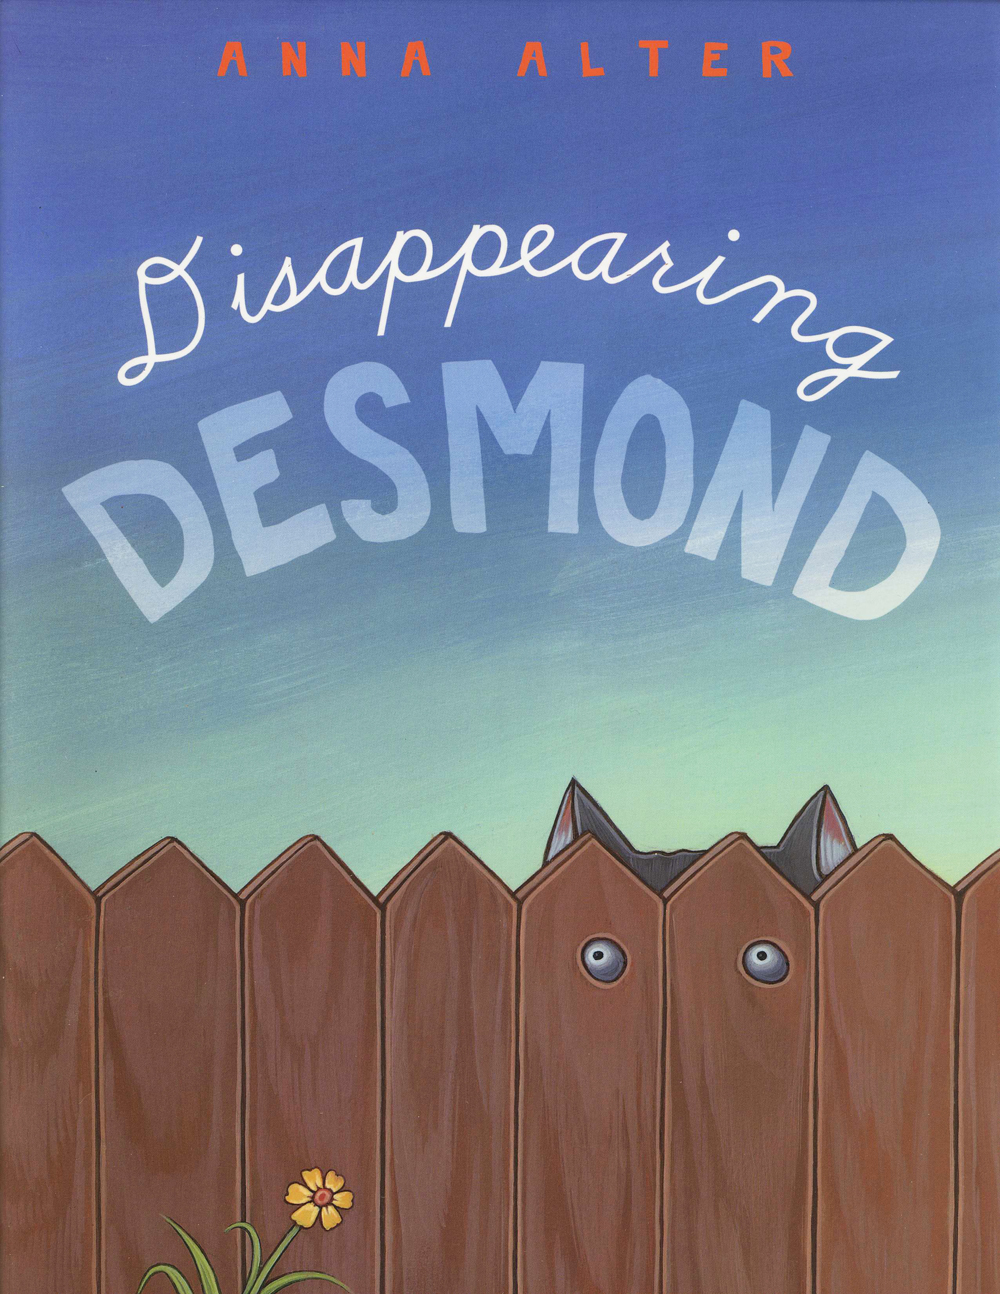 Press-Desmond-jacket.jpg